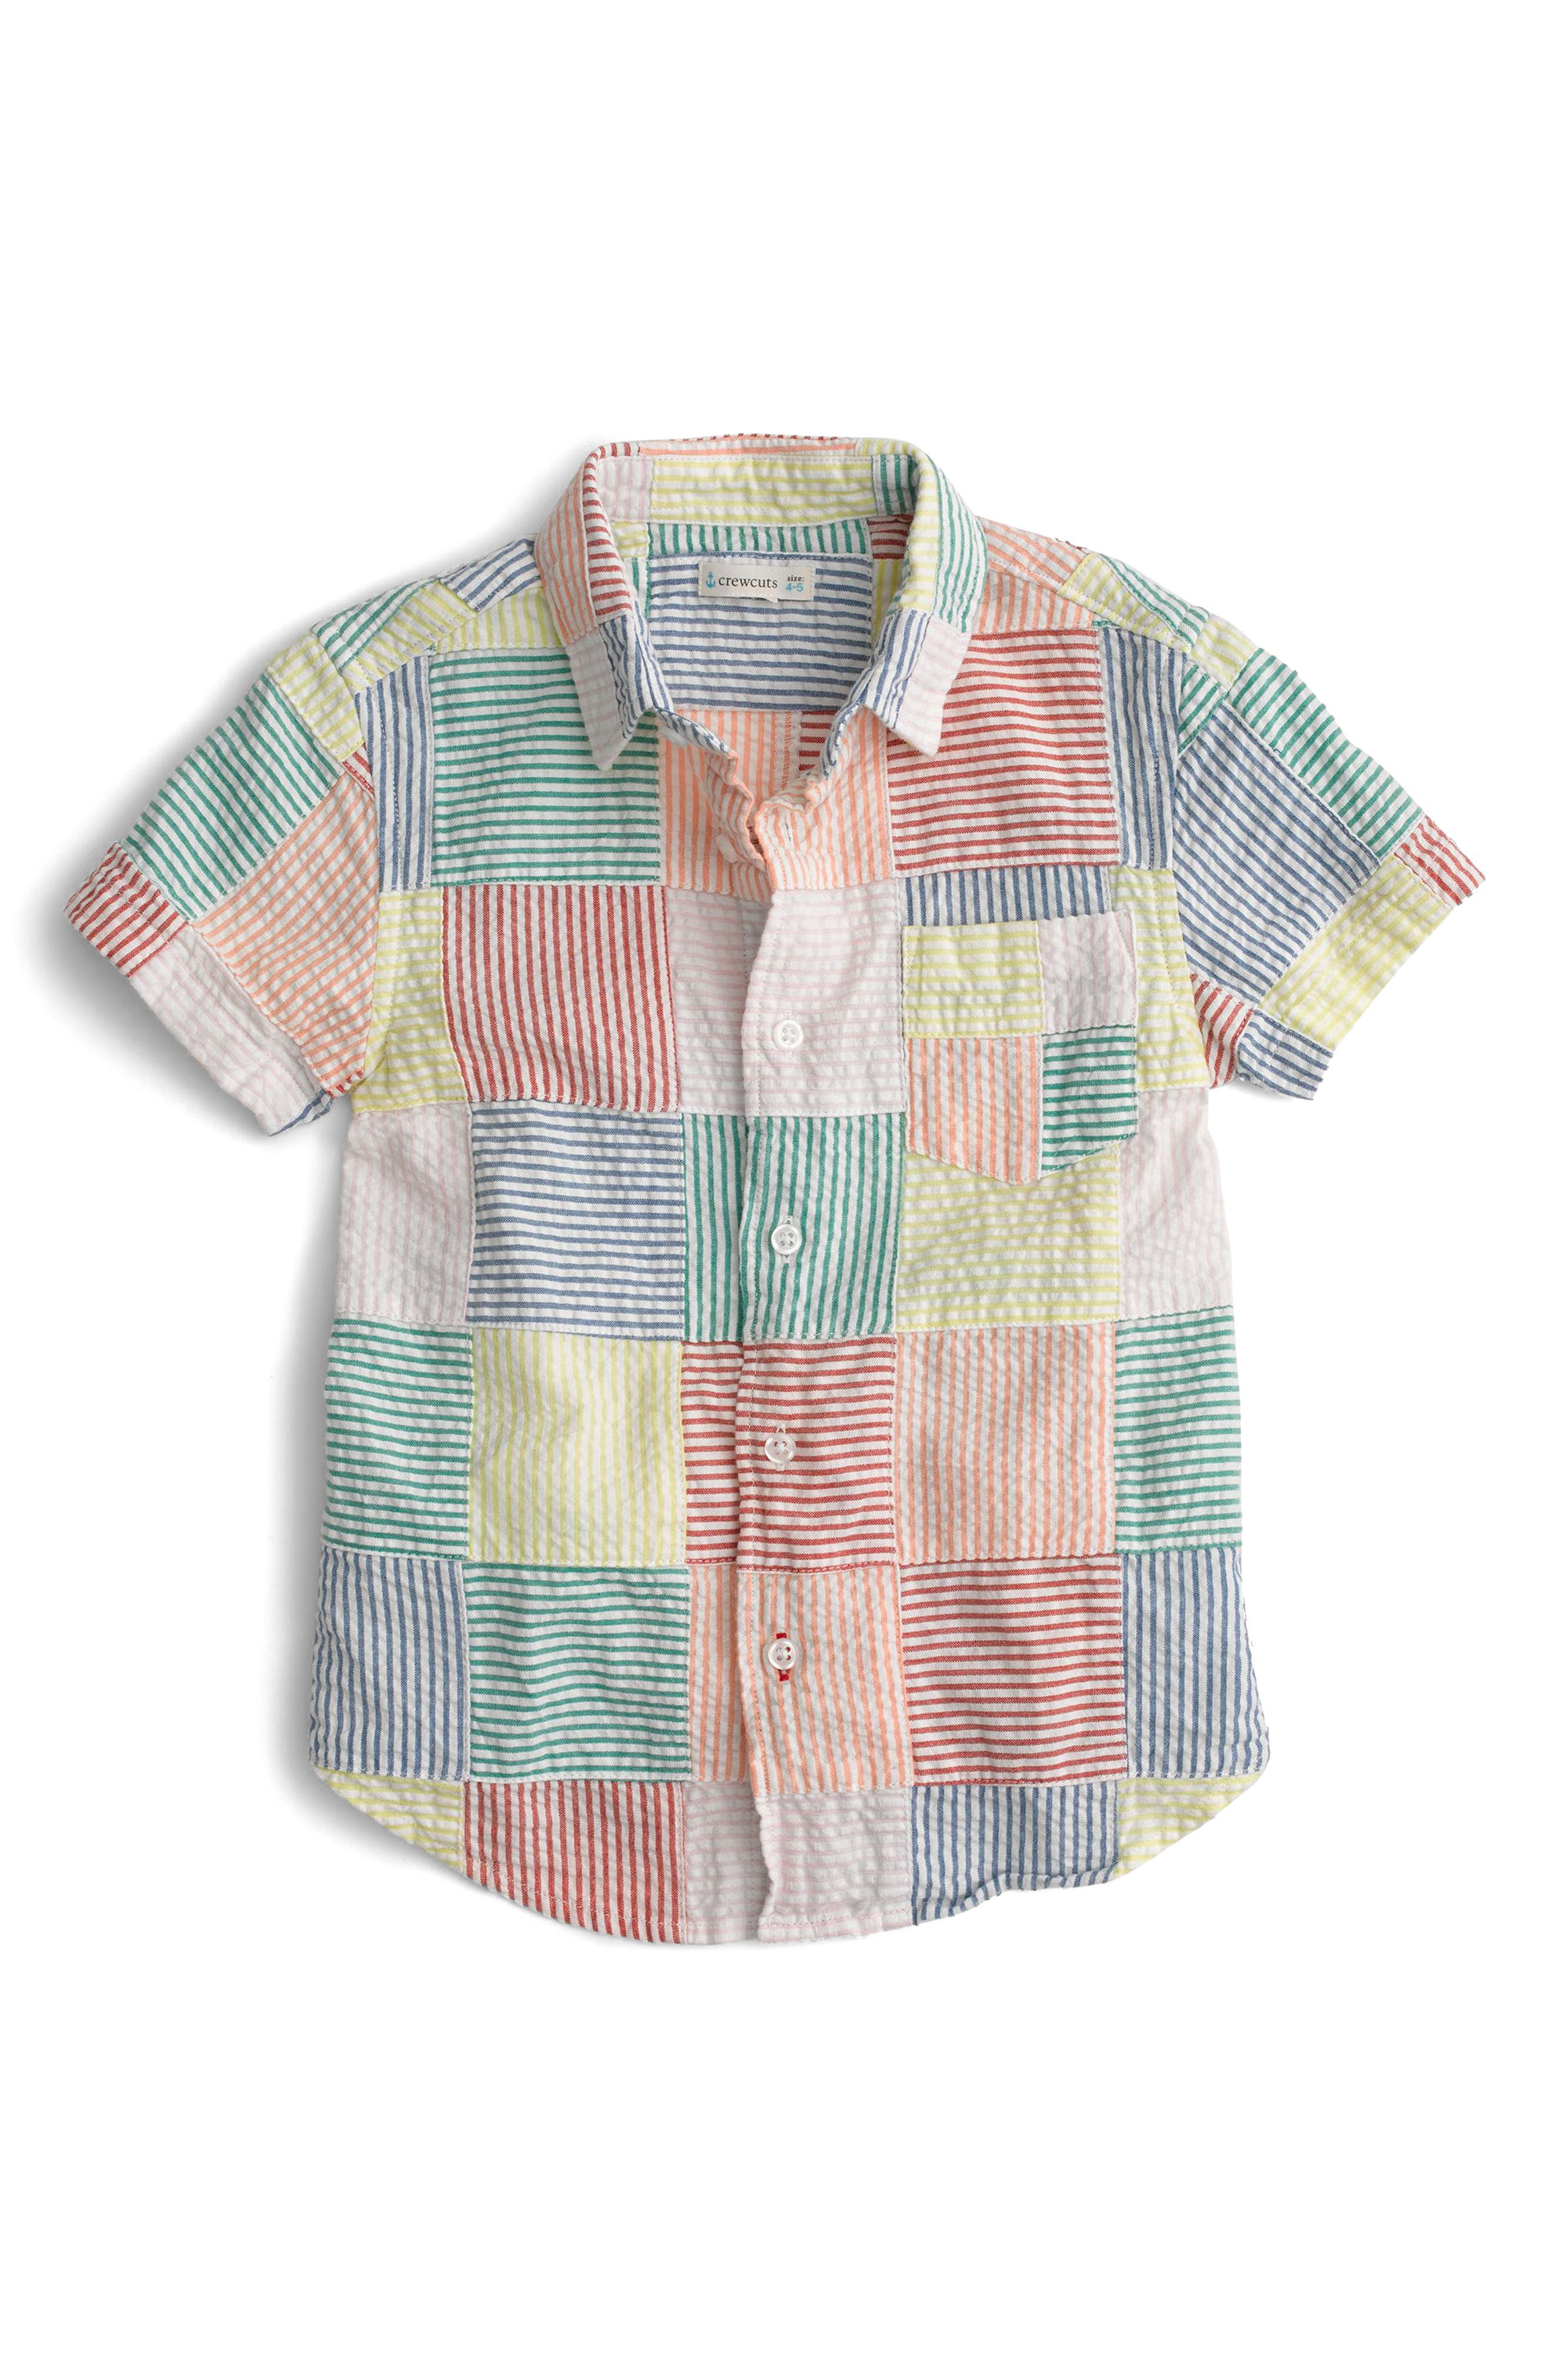 crewcuts by J.Crew Patchwork Woven Shirt (Toddler Boys, Little Boys & Big Boys)